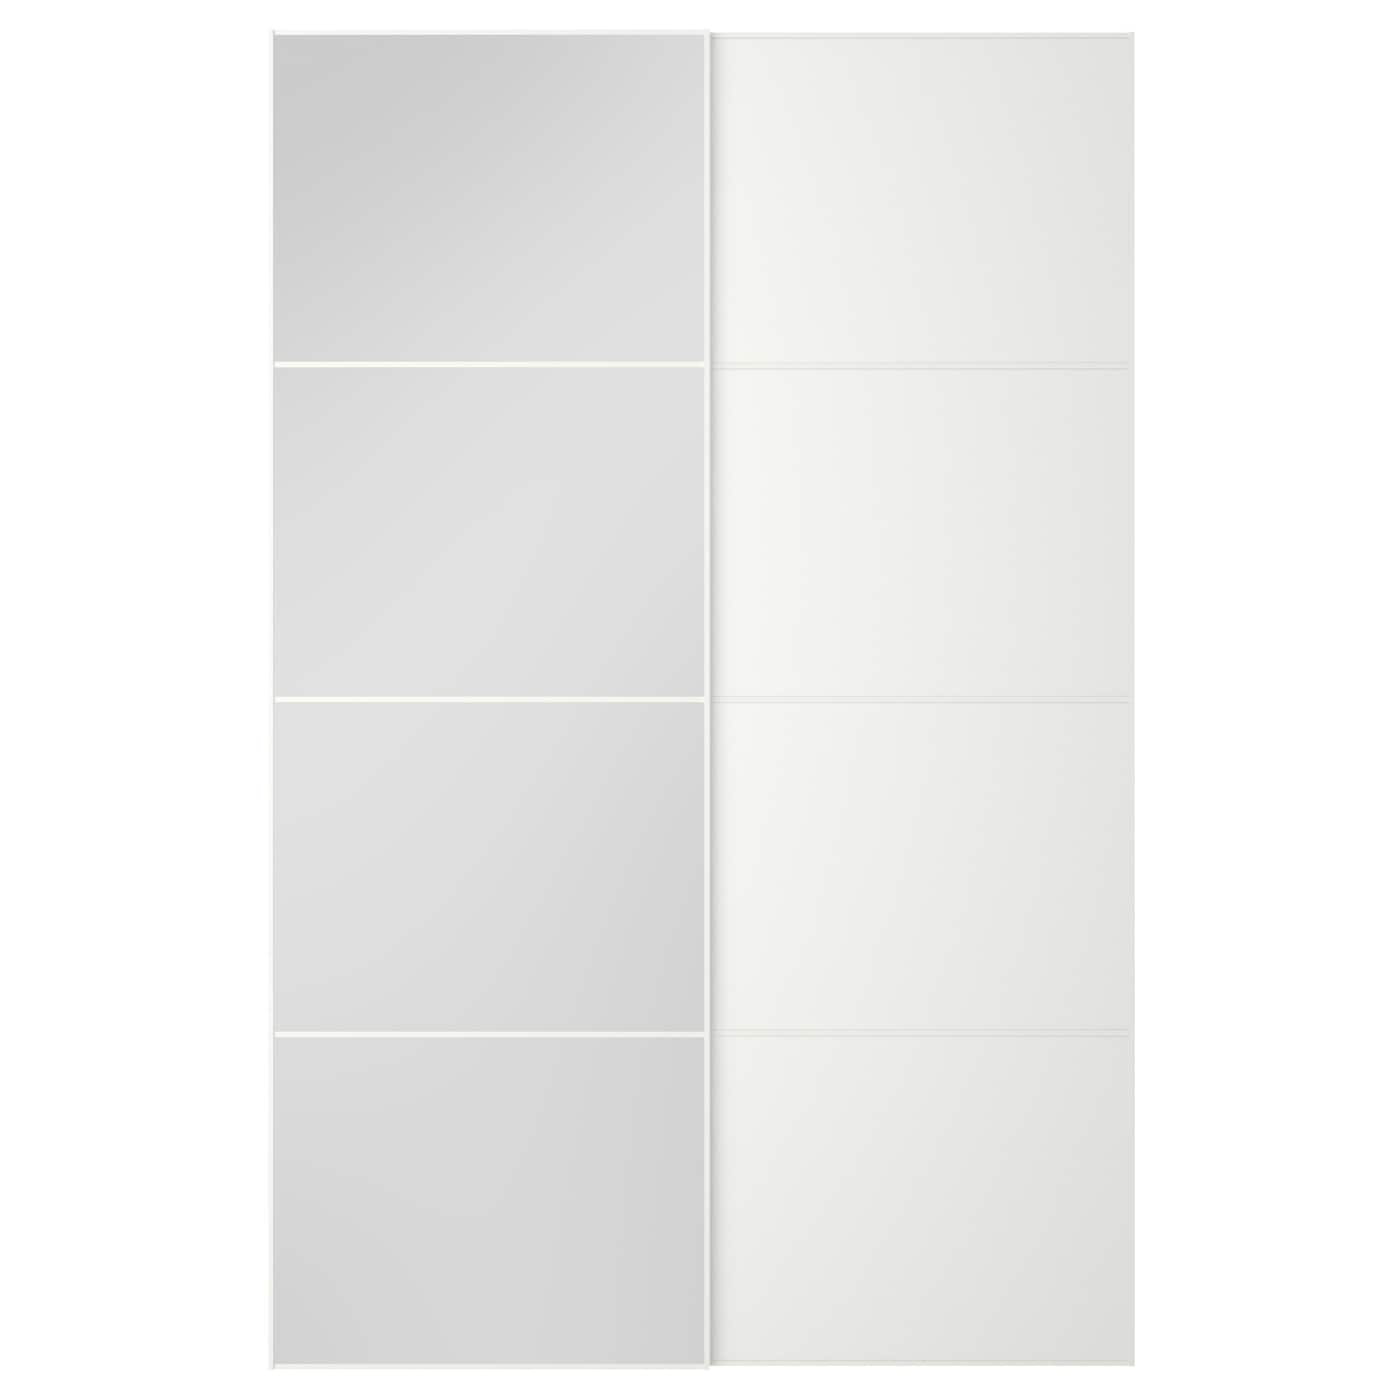 IKEA MEHAMN/AULI pair of sliding doors